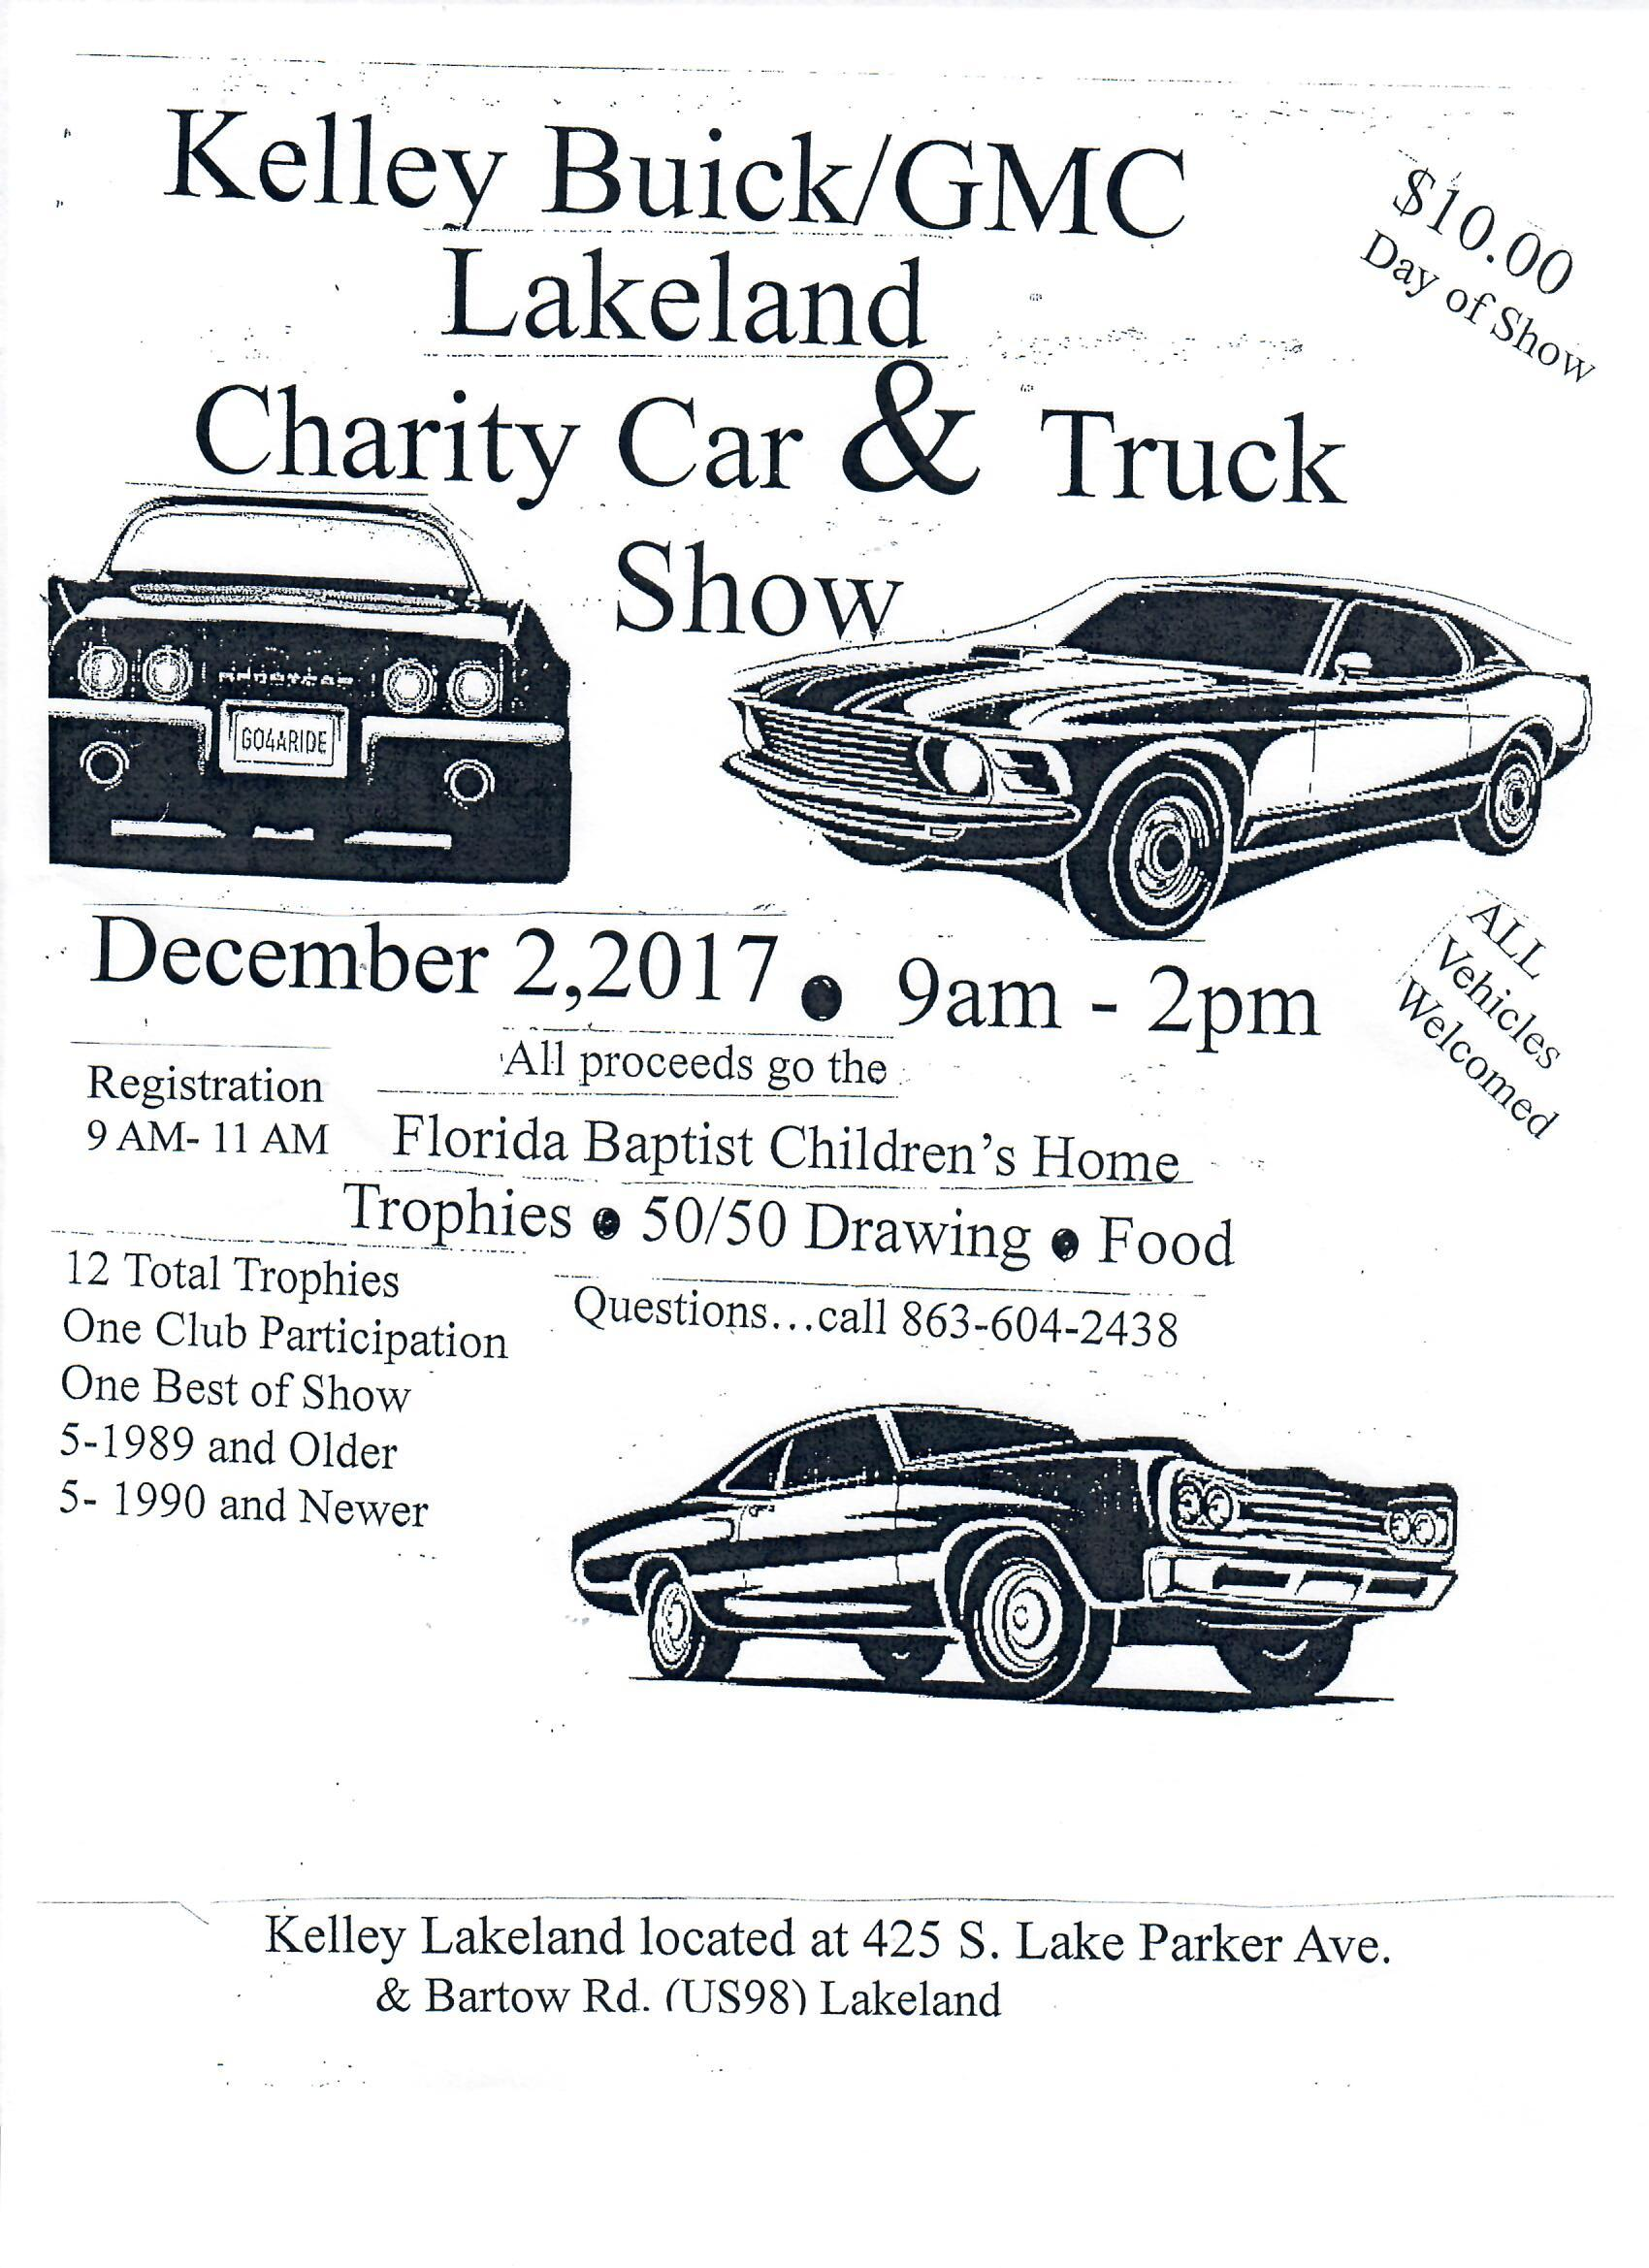 Kelley Buick GMC Lakeland Charity Car&Truck Show Events Tampa